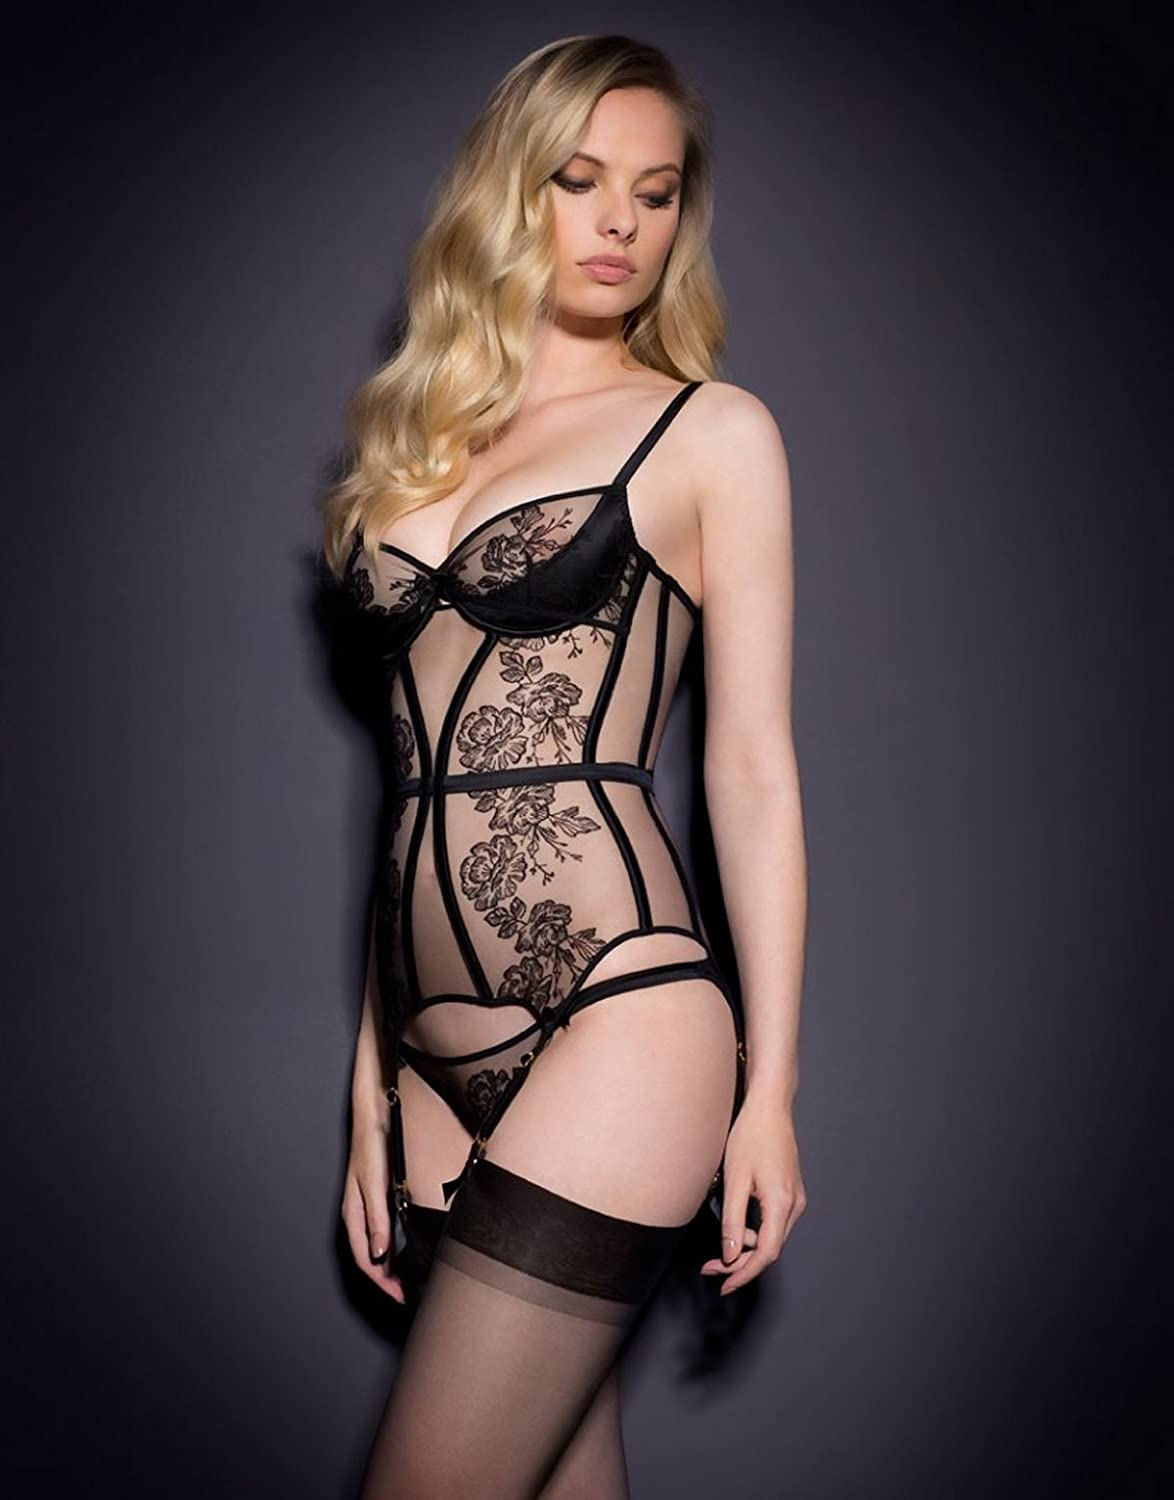 bba4bc264 Dioni Tabbers-Agent Provocateur Black Sheer Lingerie with Black Stockings  Mid Photo 8 inch x 10 inch PHOTOGRAPH at Amazon s Entertainment  Collectibles Store